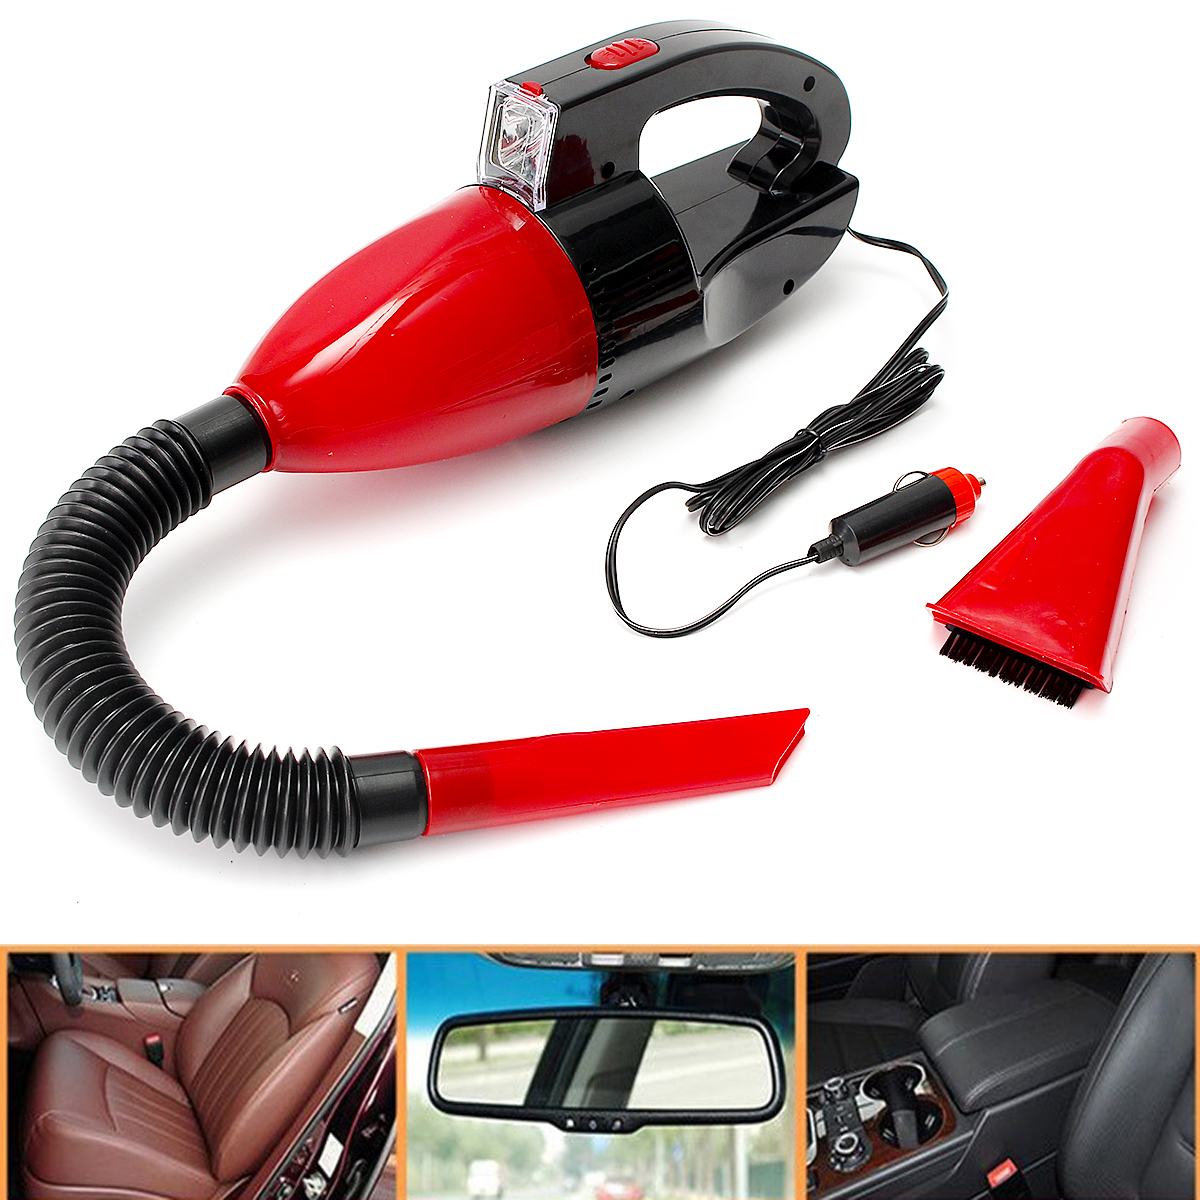 Portable12V 60W Auto Car Vaccum Cleaner Light Lamb Vehicle Mini Dust Cleaner